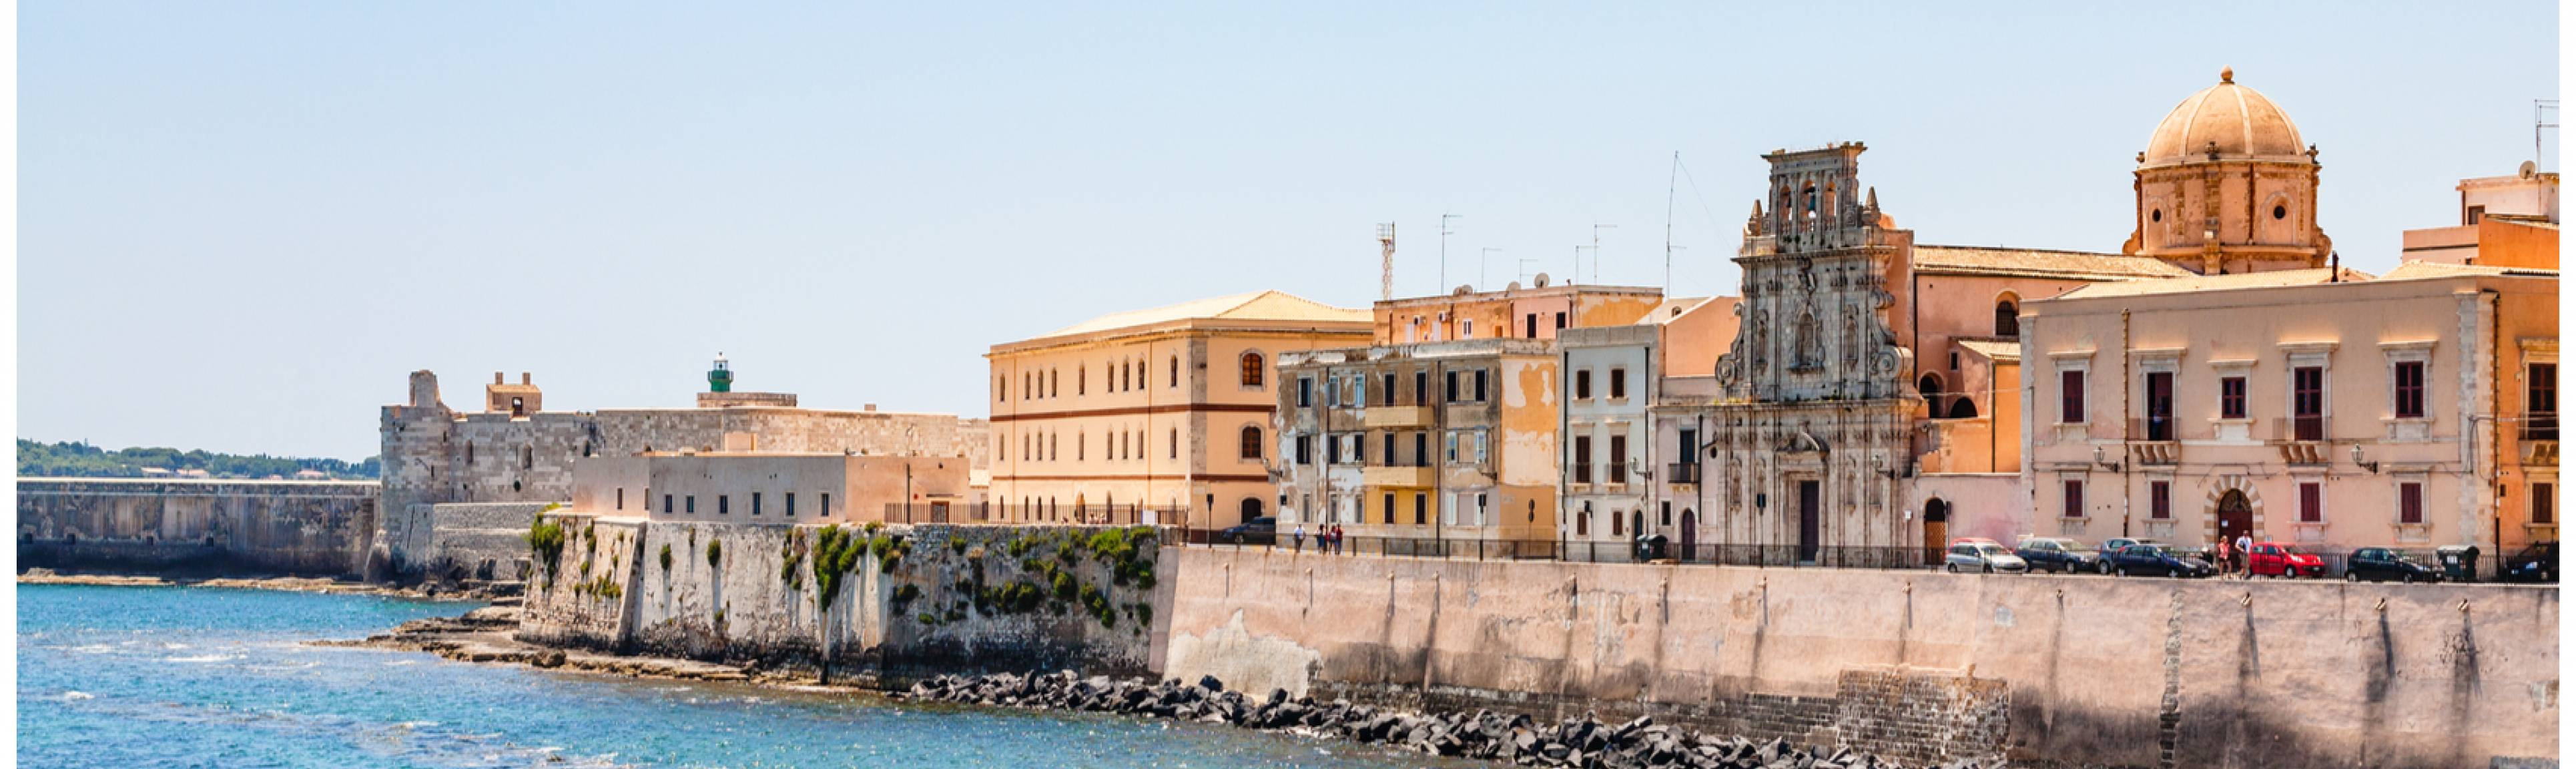 View from the water of Syracuse in Sicily